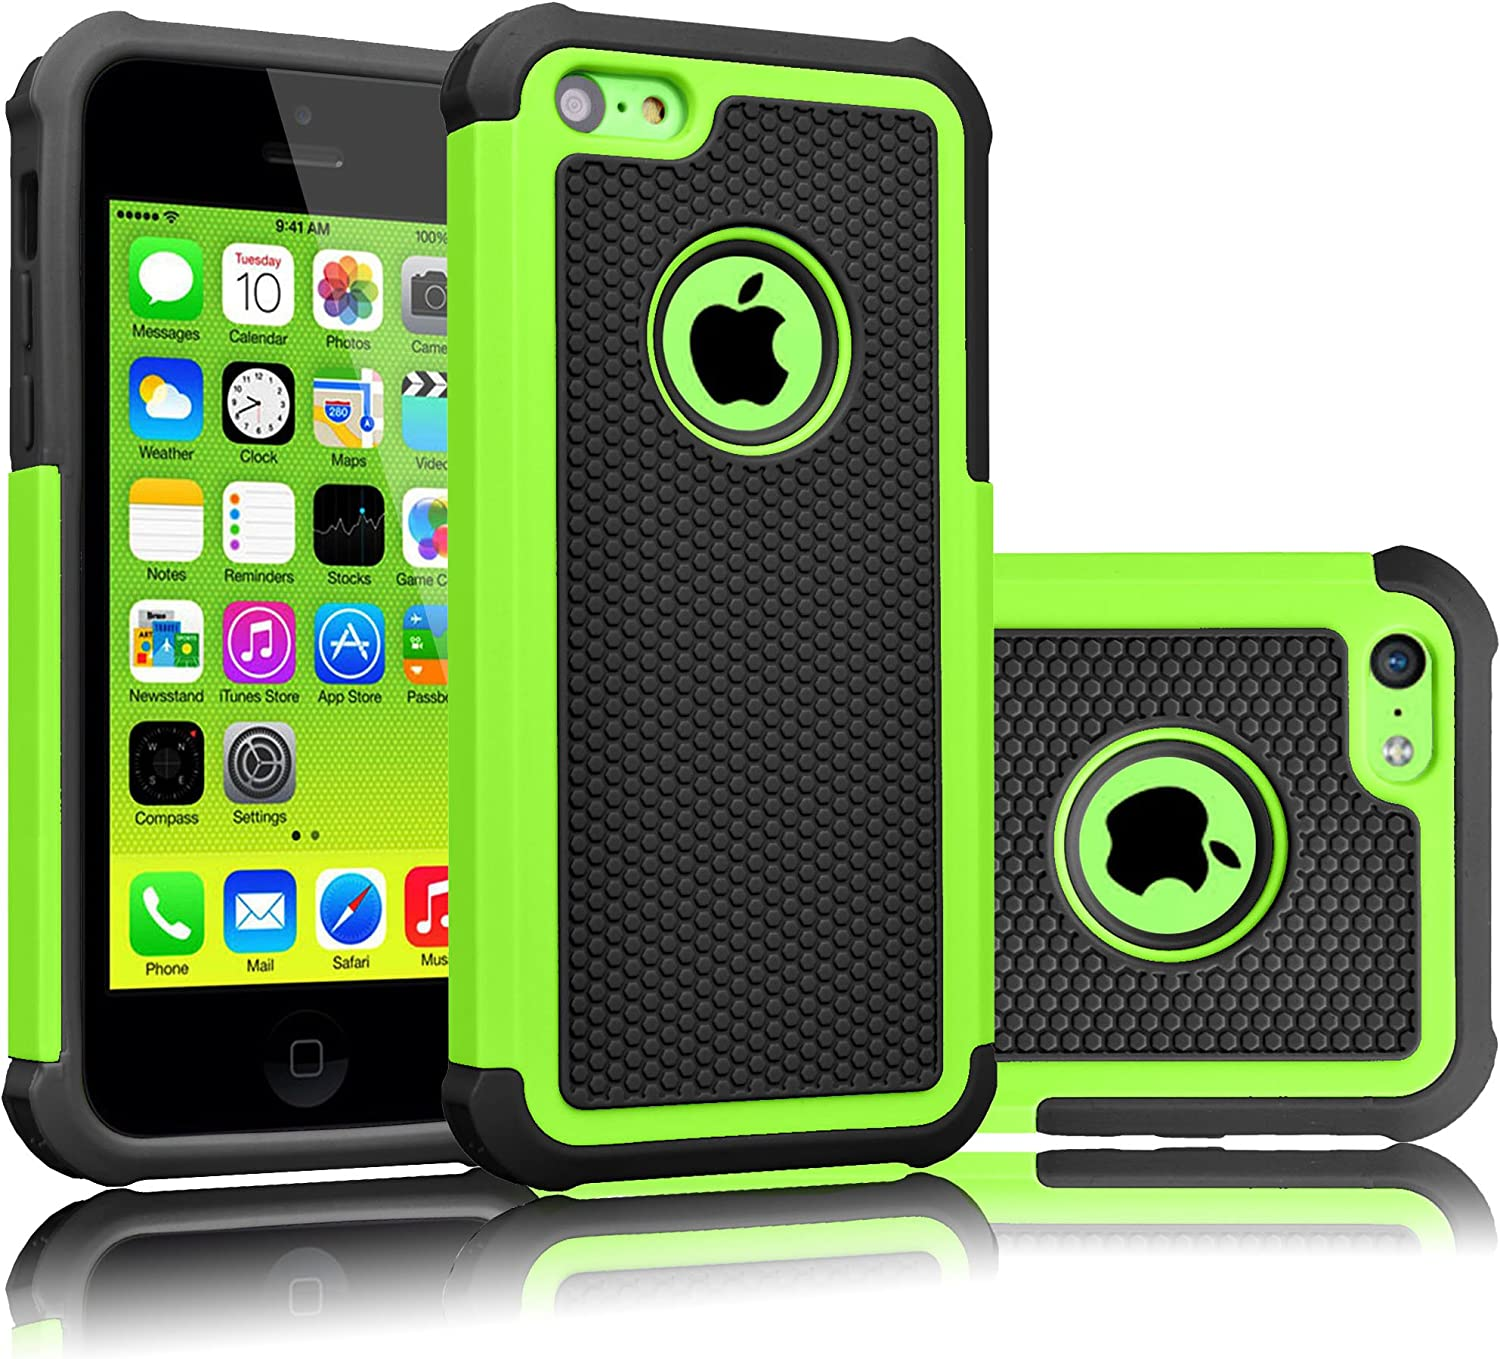 Tekcoo iPhone 5C Case, [Tmajor Series] [Green/Black] Shock Absorbing Hybrid Impact Defender Rugged Slim Case Cover Shell for Apple iPhone 5C Hard Plastic Outer + Rubber Silicone Inner